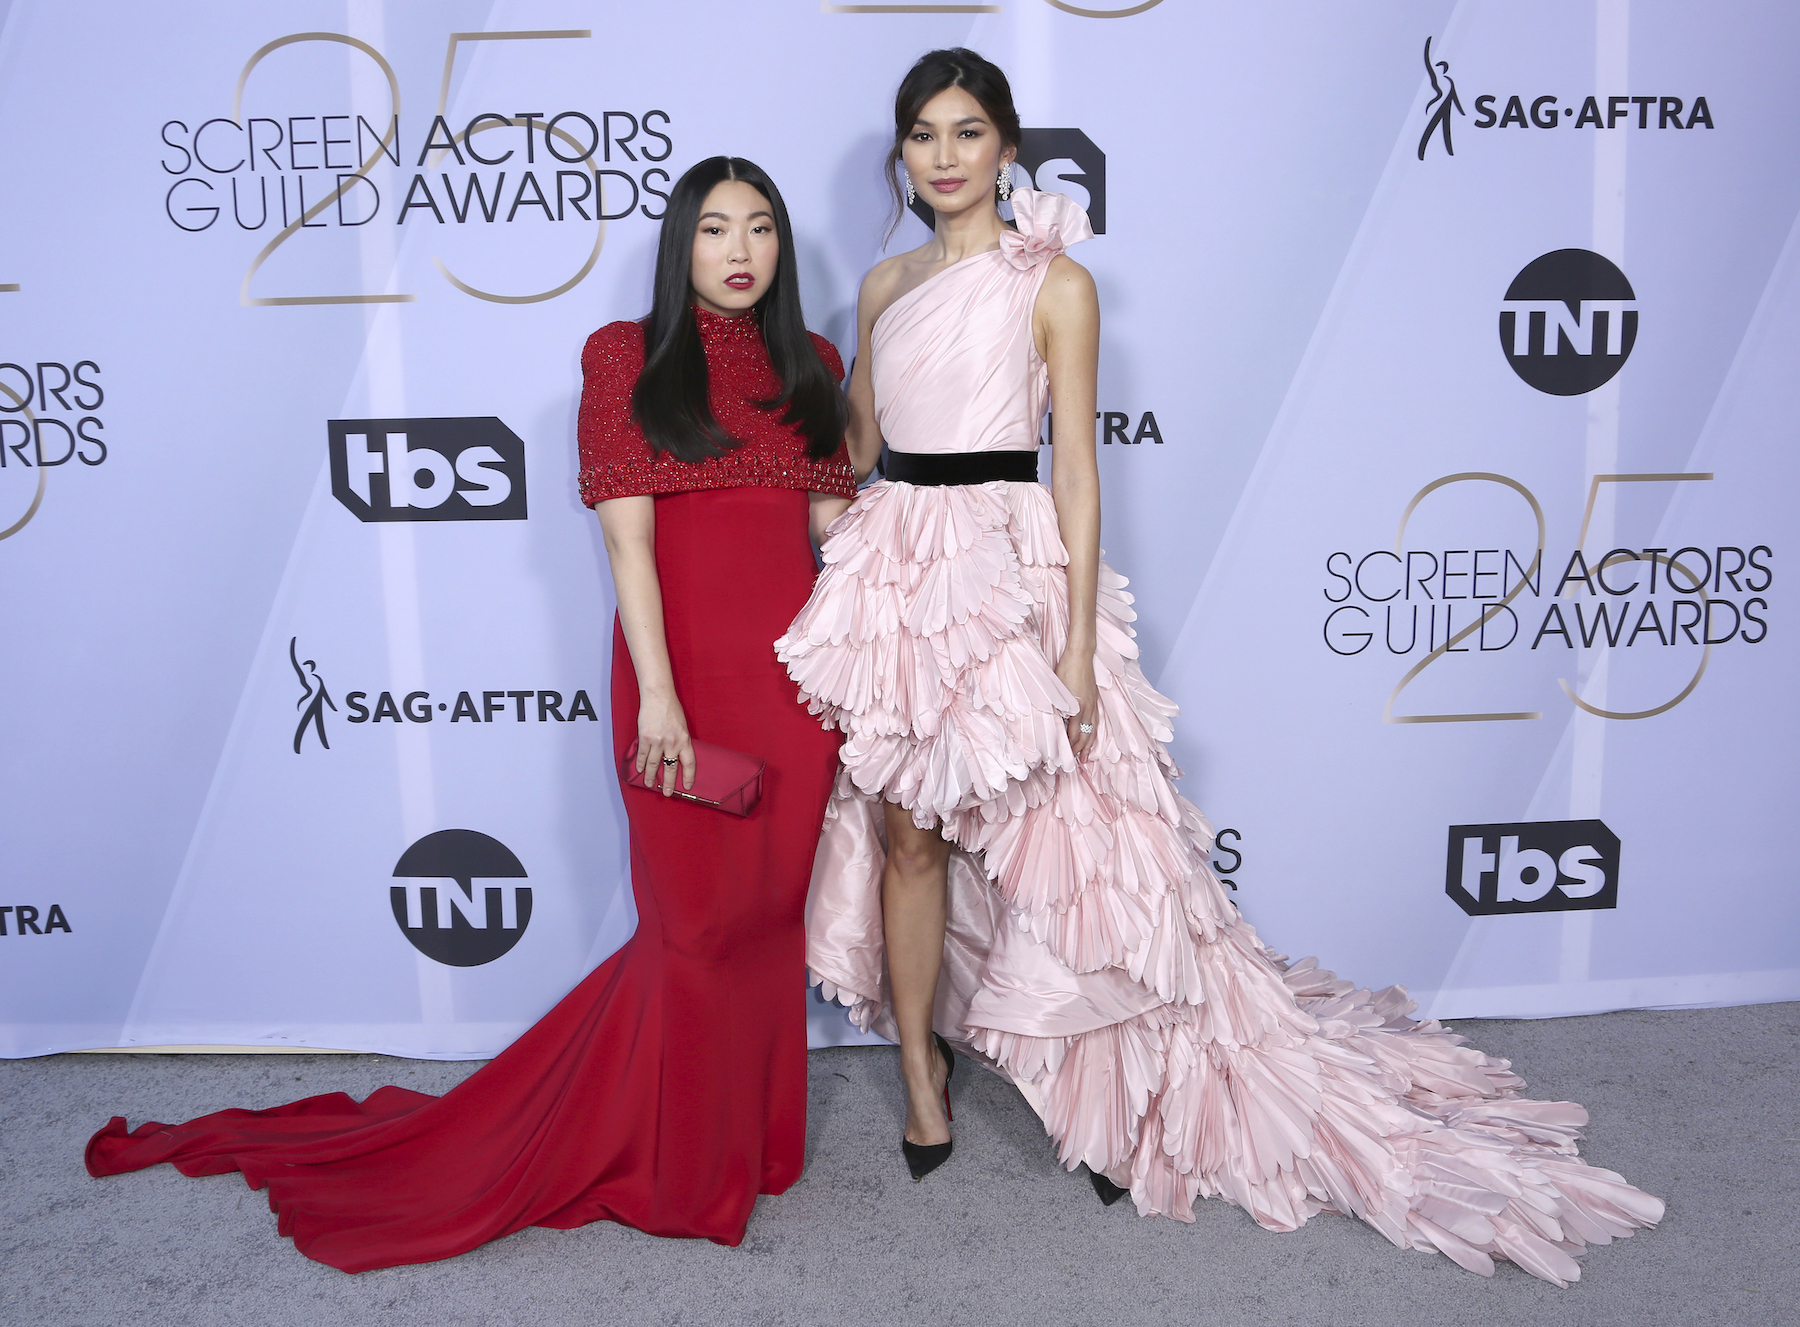 <div class='meta'><div class='origin-logo' data-origin='AP'></div><span class='caption-text' data-credit='Willy Sanjuan/Invision/AP'>Awkwafina, left, and Gemma Chan arrive at the 25th annual Screen Actors Guild Awards at the Shrine Auditorium & Expo Hall on Sunday, Jan. 27, 2019, in Los Angeles.</span></div>